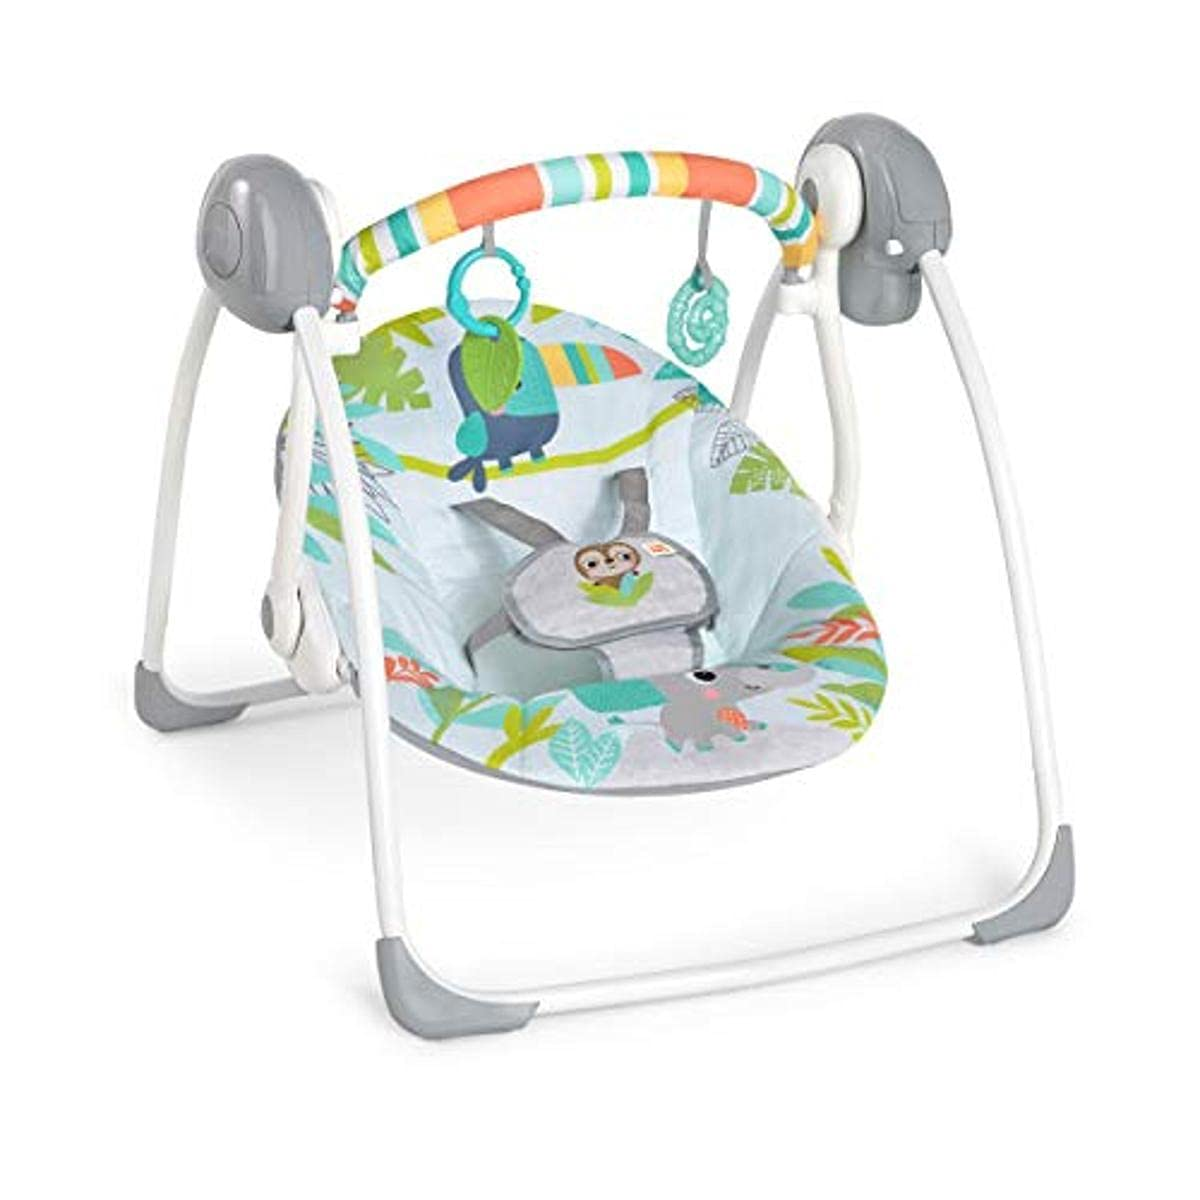 Rainforest Vibes Portable Compact Swing with Toy bar